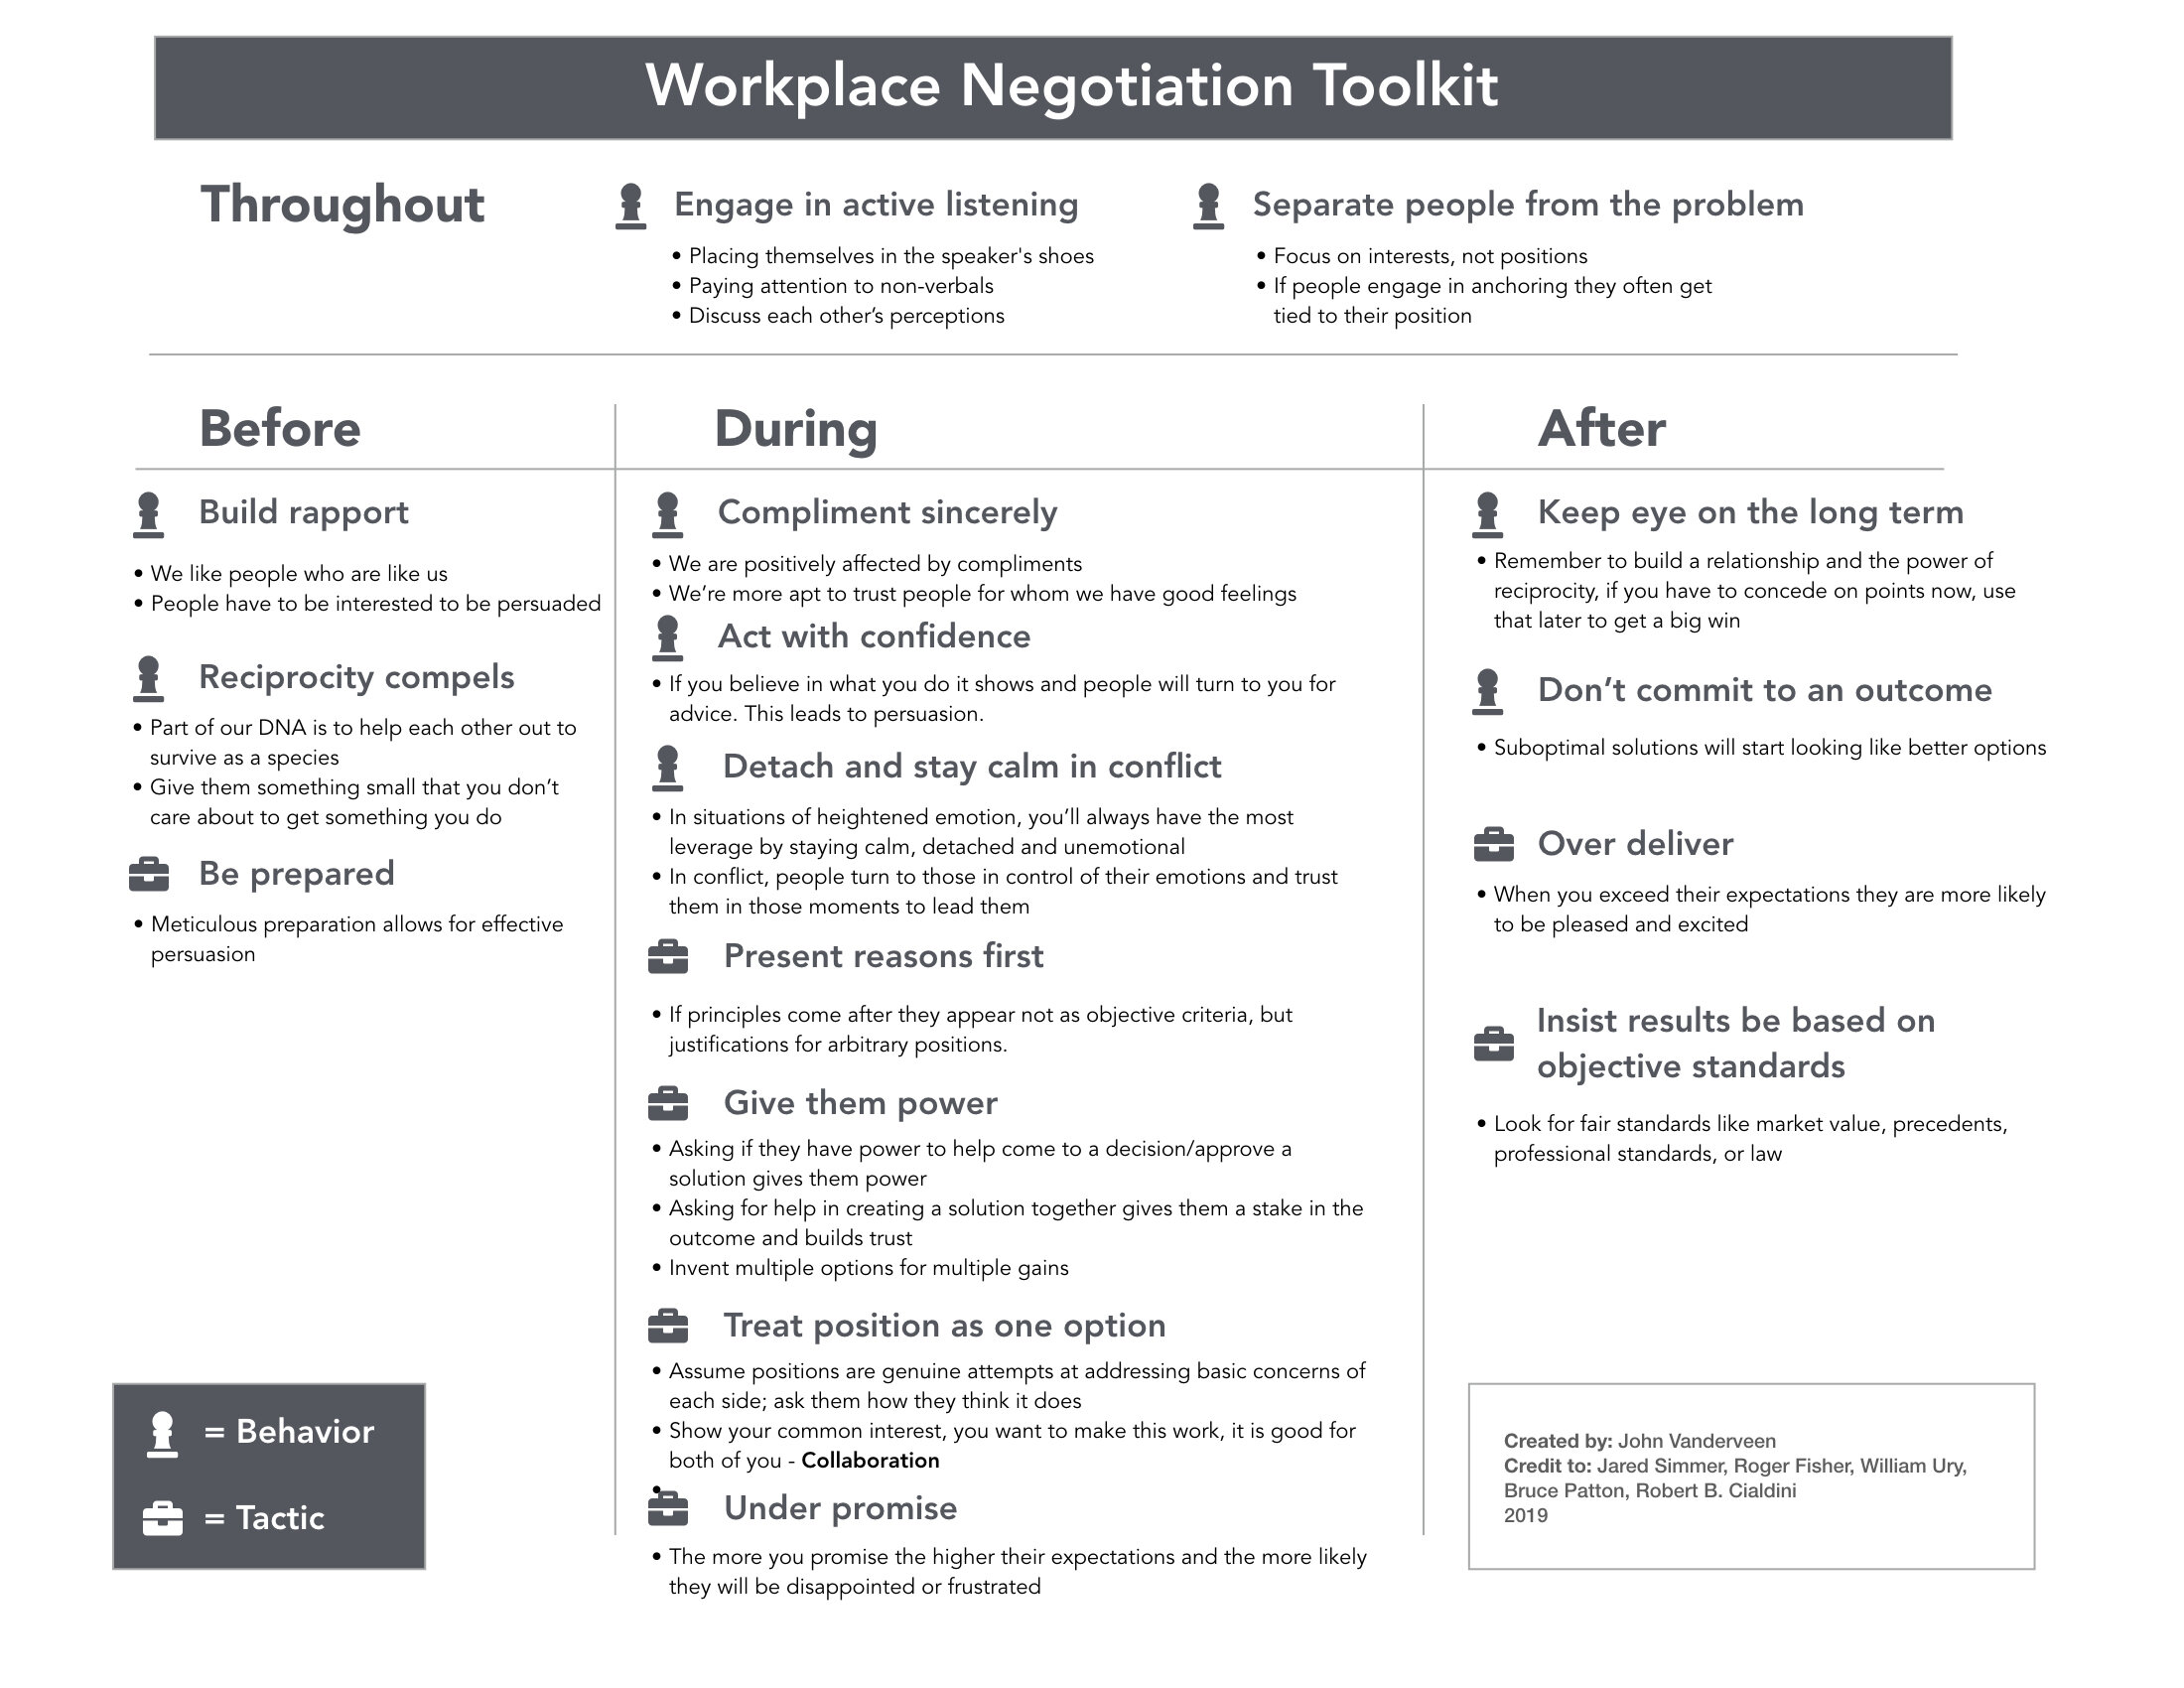 Workplace Negotiation - A handy one-pager reference for negotiation tactics and behaviors. Free to download, click link below.A link to the talk at MidwestUX 19 coming soon…